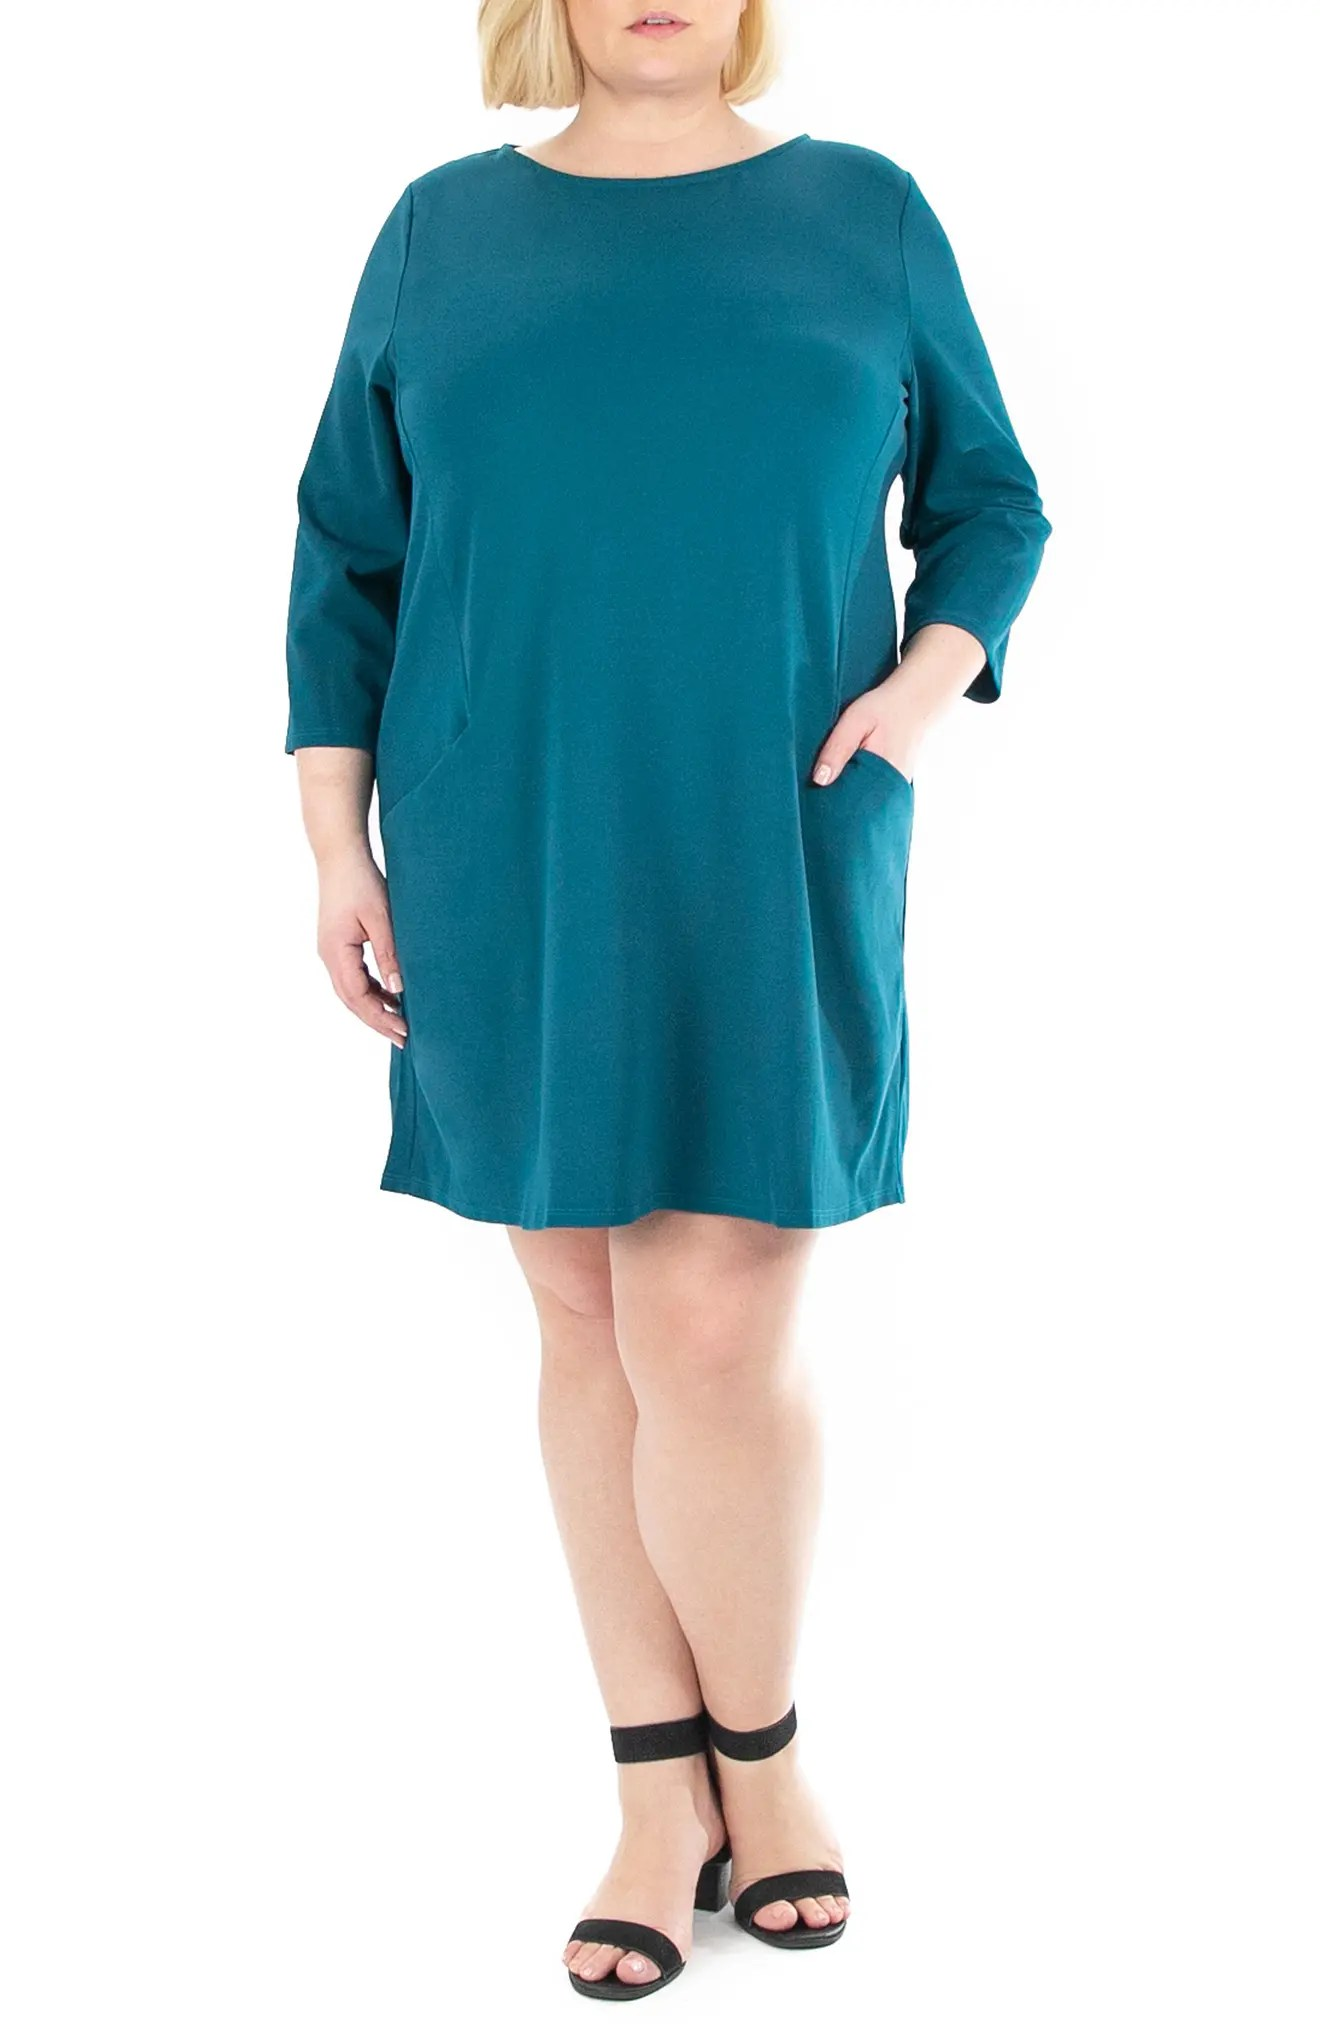 plus size dresses for women clearance